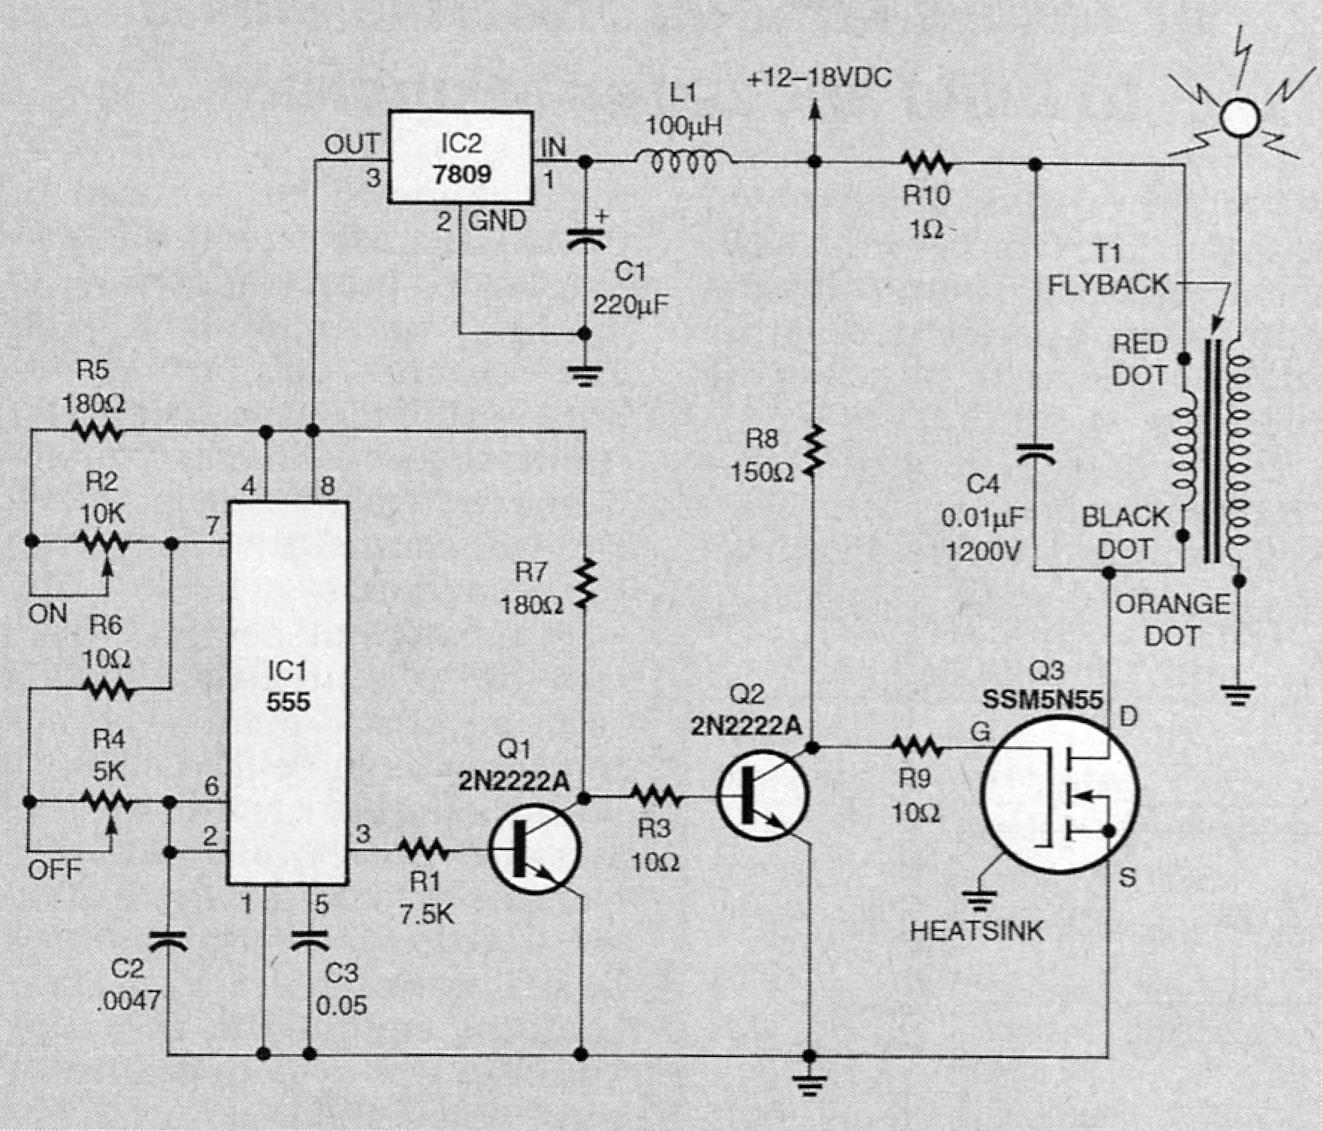 hight resolution of tesla coil schematic circuit solid state tesla coil circuit wiring build a solid state tesla coil